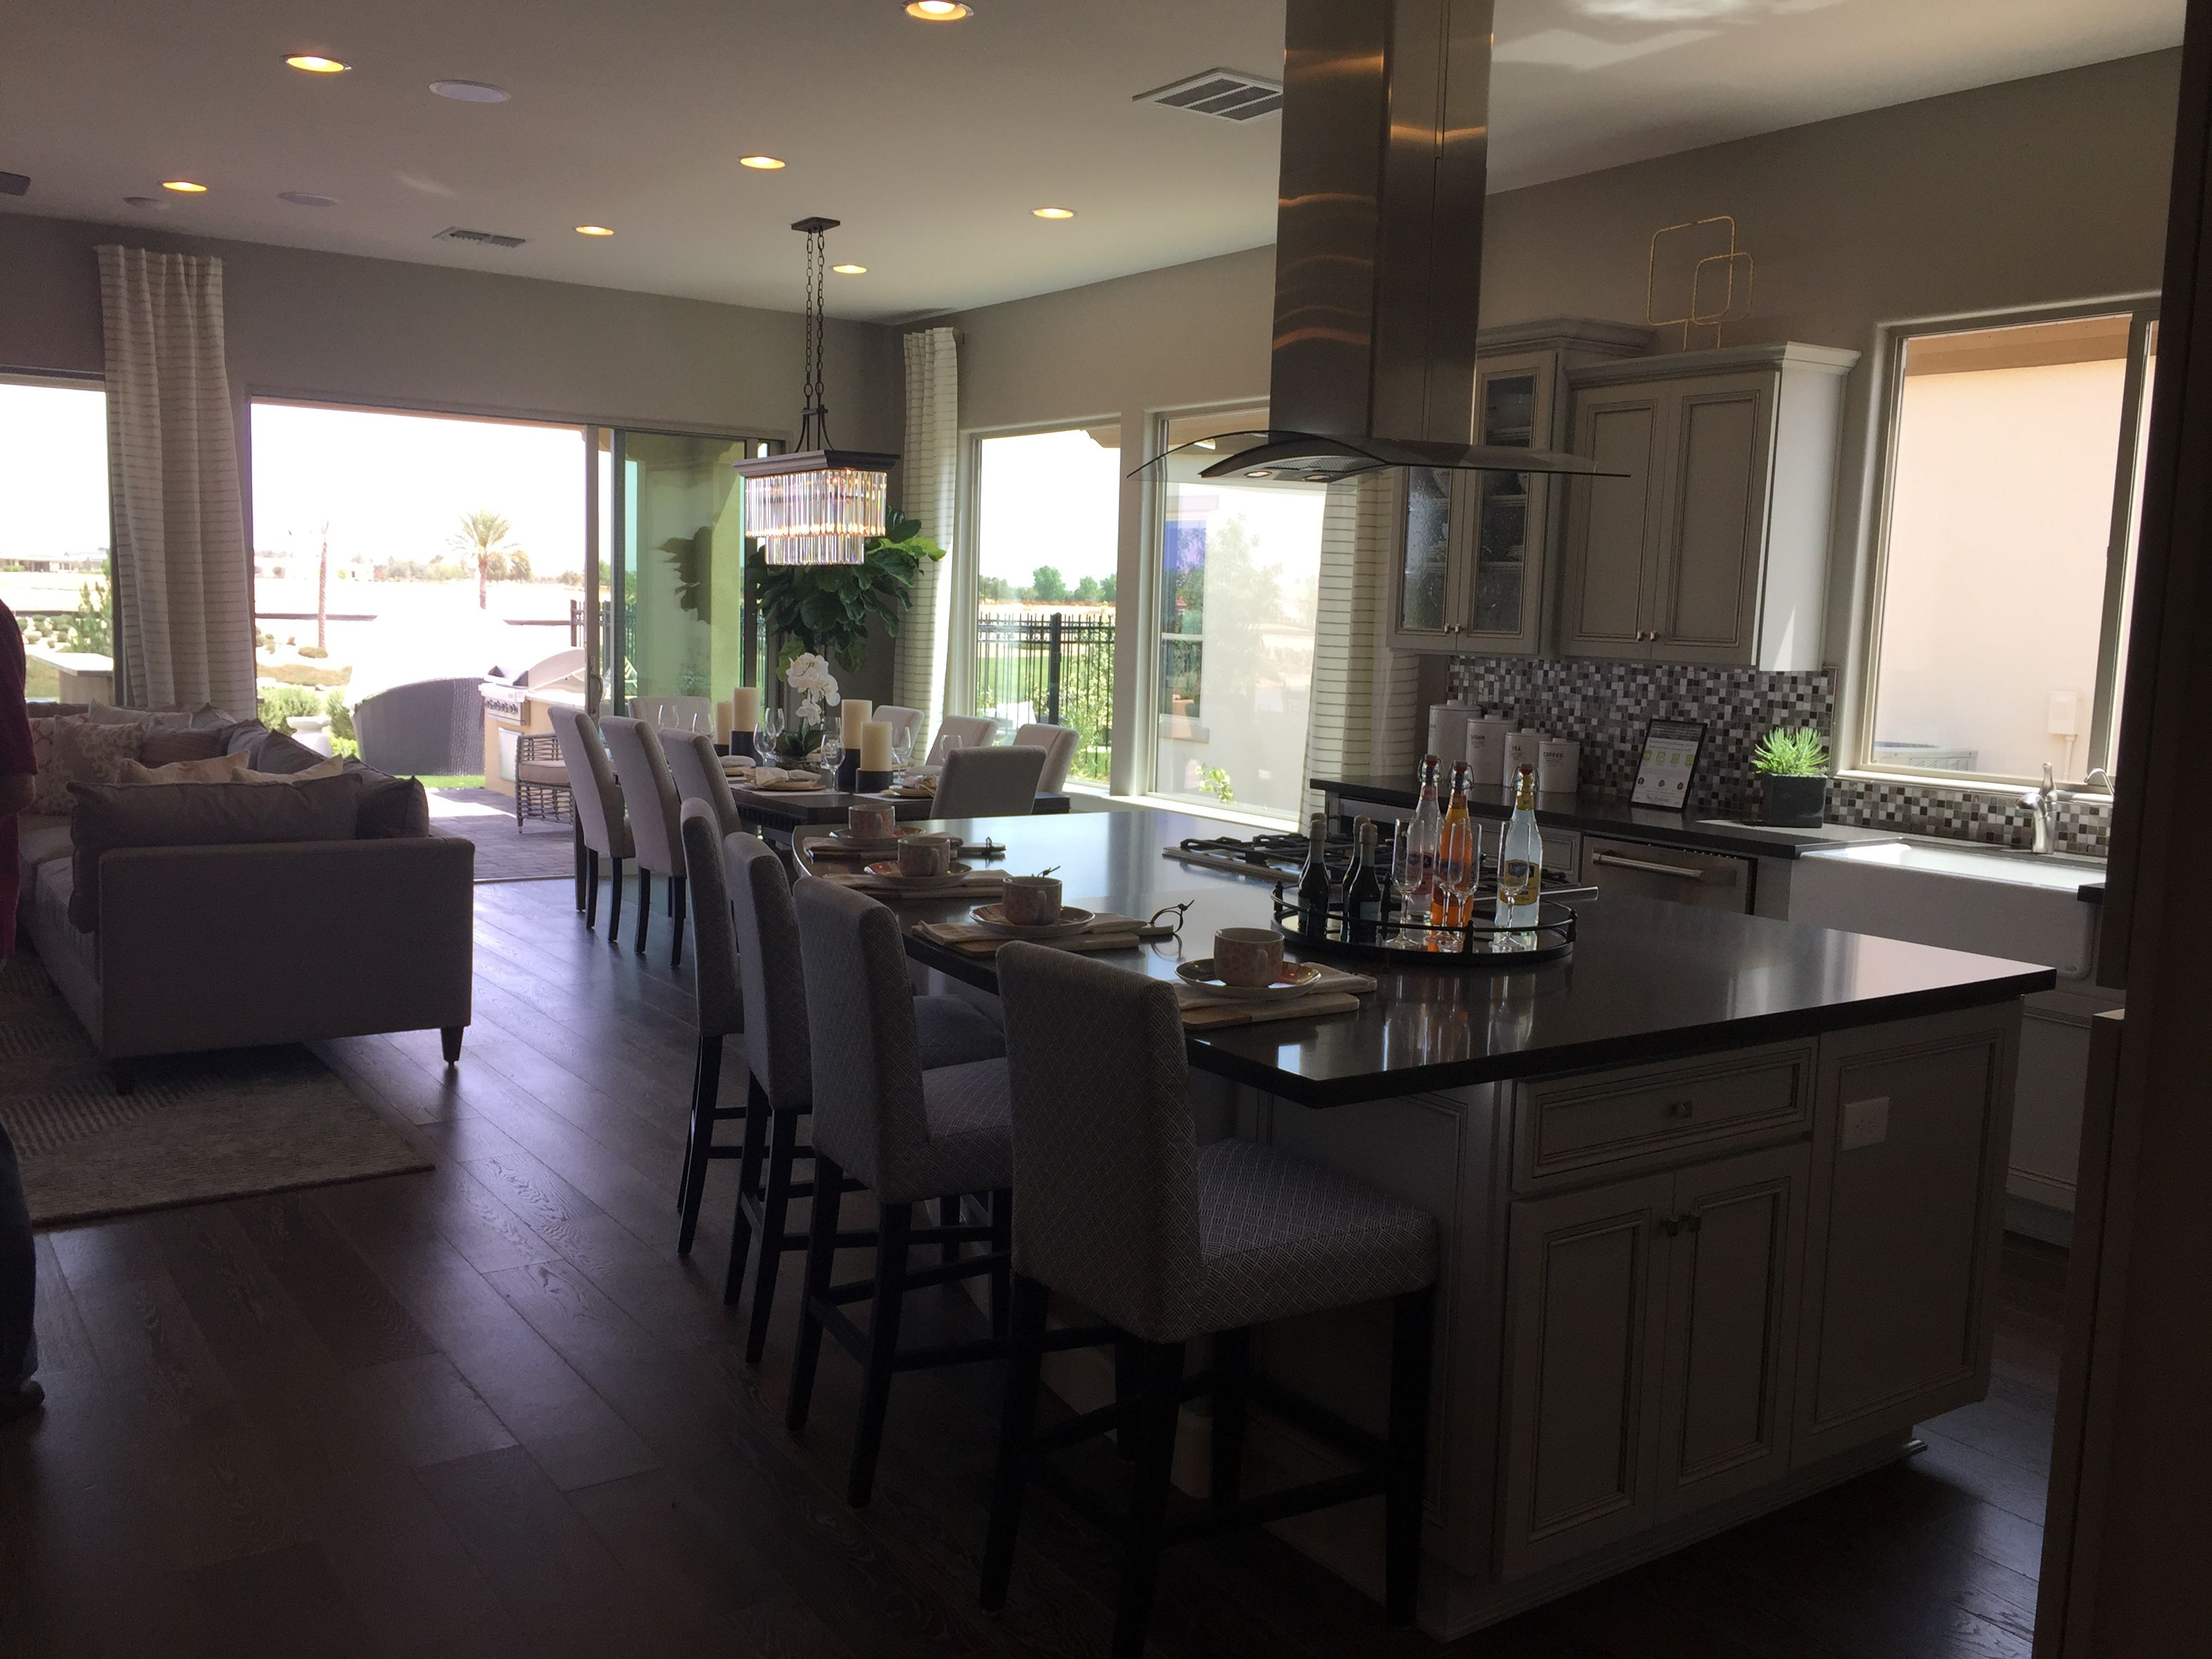 idea by barbara baum on kitchen cabinet colors and ideas kitchen cabinet colors kitchen on kitchen cabinet color ideas id=72031